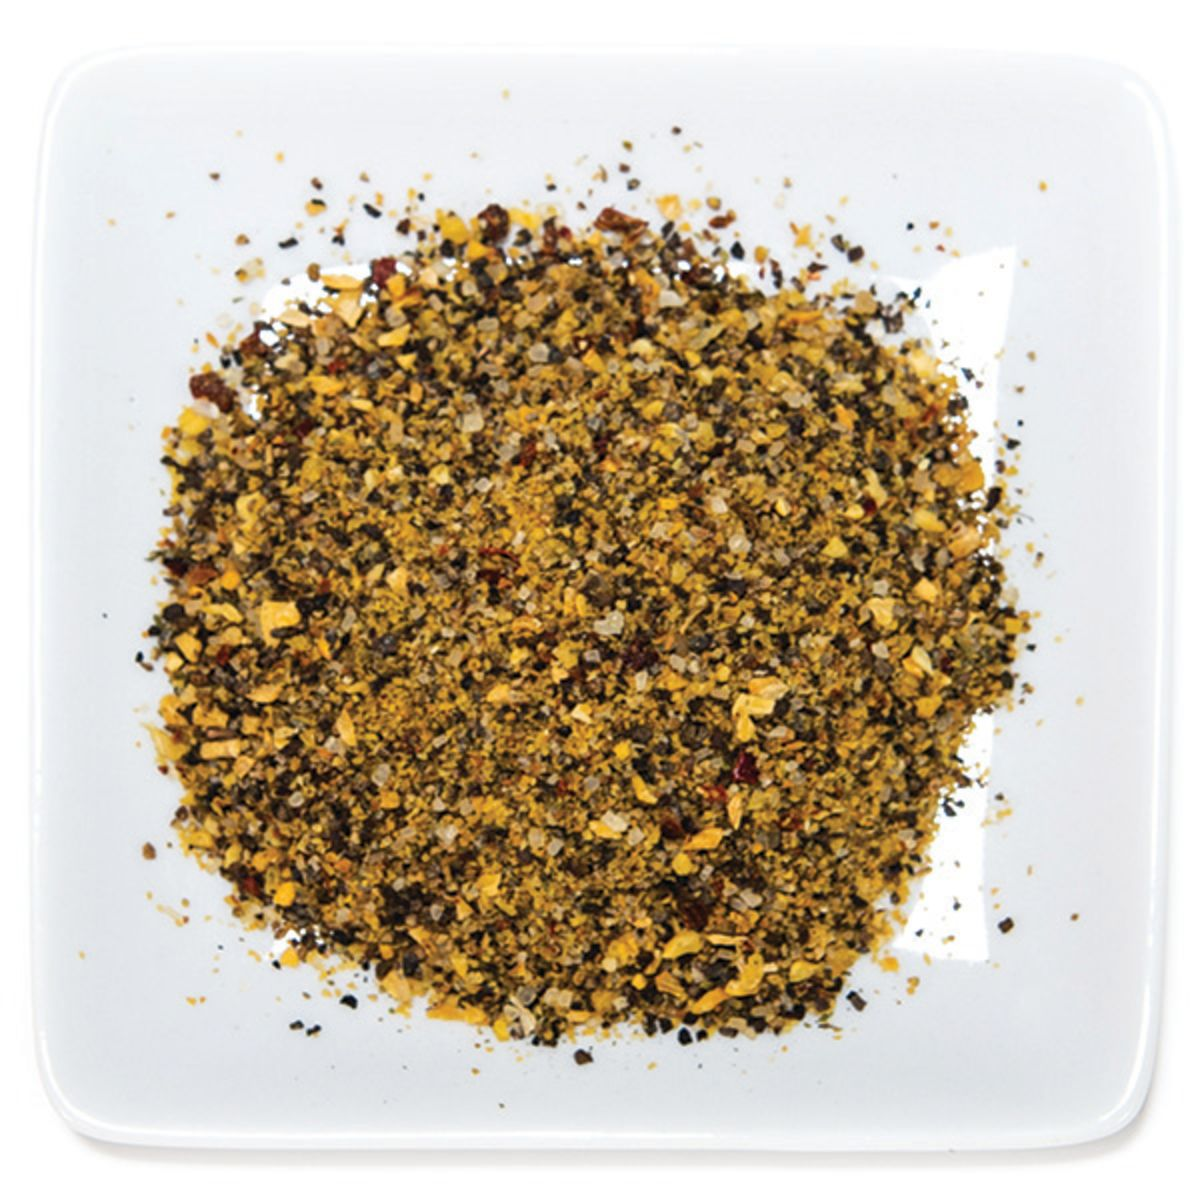 Cracked Black Pepper Rub, 5 ozs by weight [3/4 cup by volume]